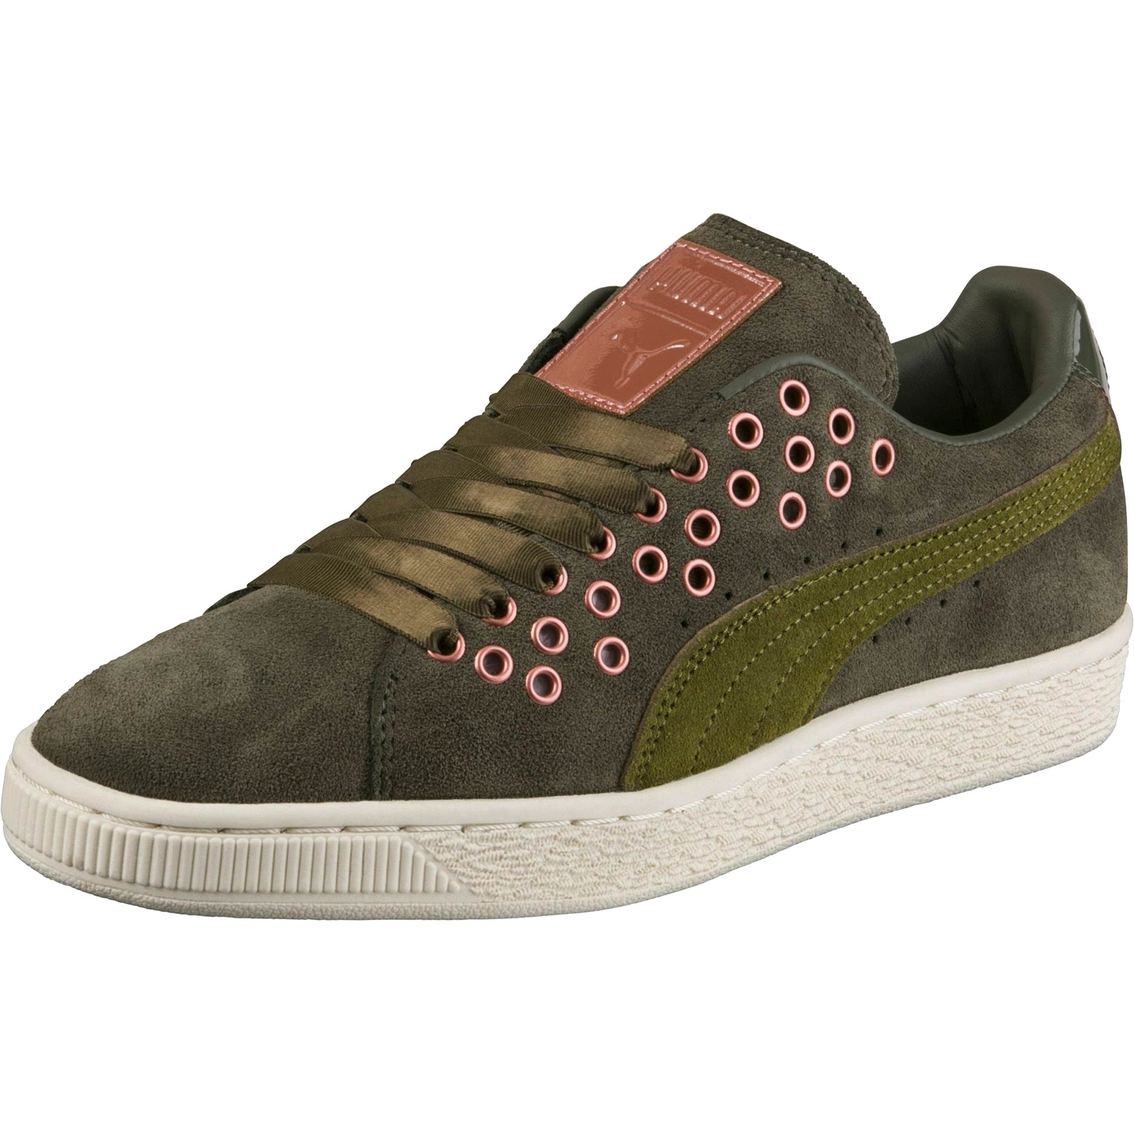 45526f8f05db75 Puma Women s Sportstyle Suede Xl Lace Vr Sneakers